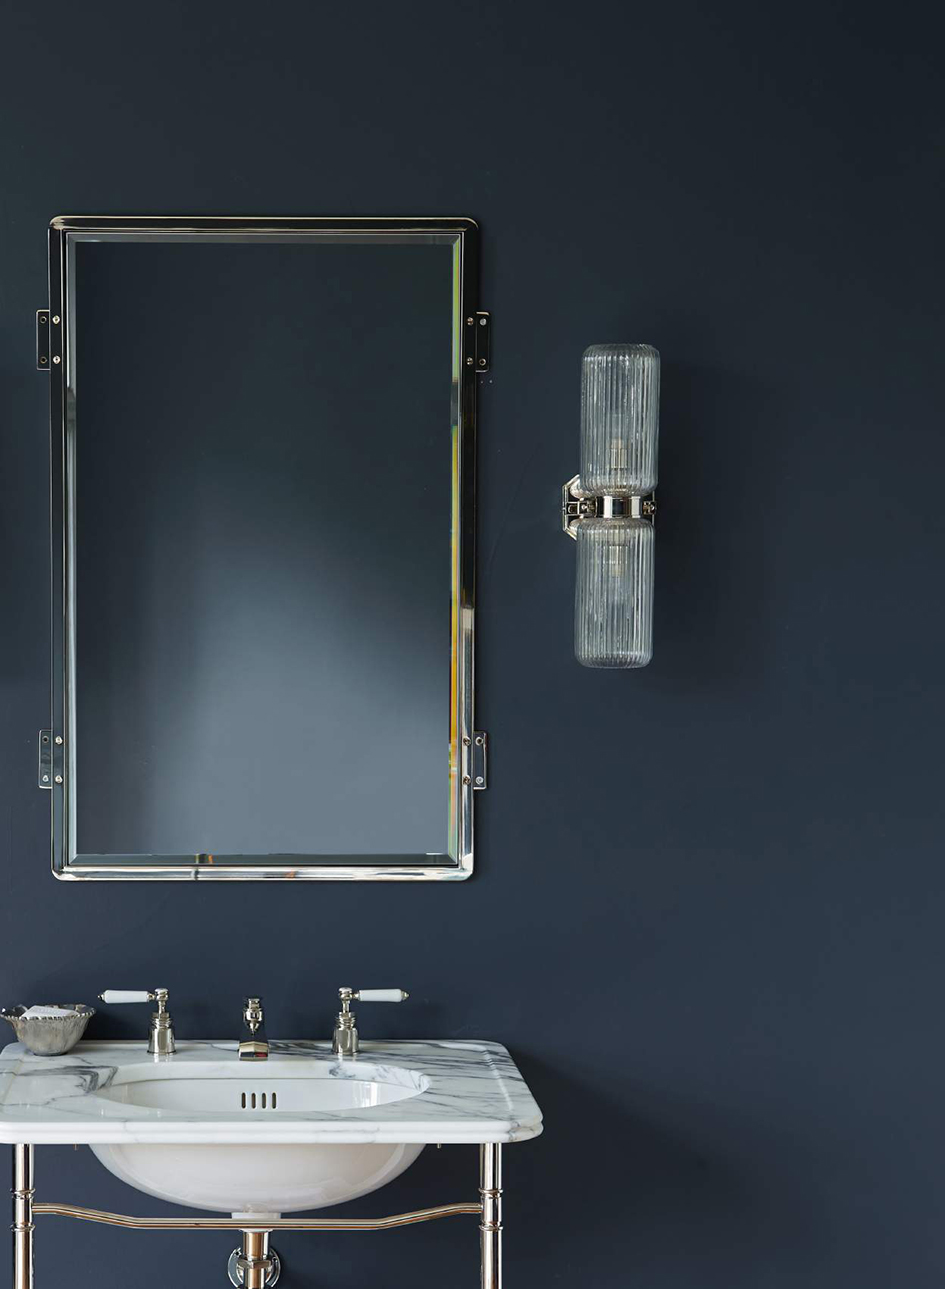 Top Luxury Bathroom Exhibitors at Decorex 2016 luxury bathroom Top Luxury Bathroom Exhibitors at Decorex 2016 img63